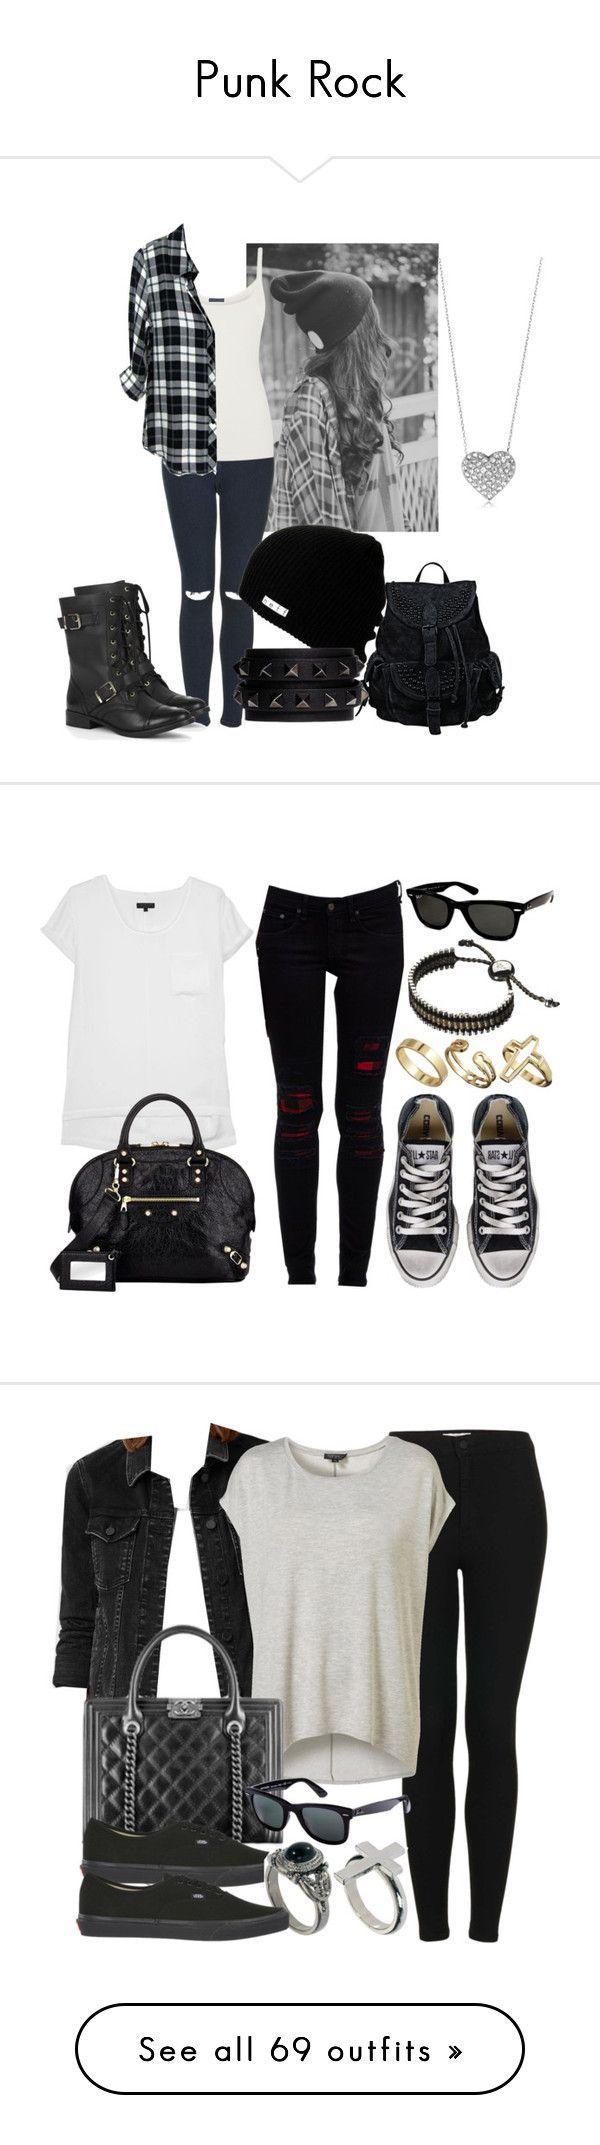 Best 25+ Punk rock outfits ideas on Pinterest | Grunge fashion winter Punk outfits and Red and ...